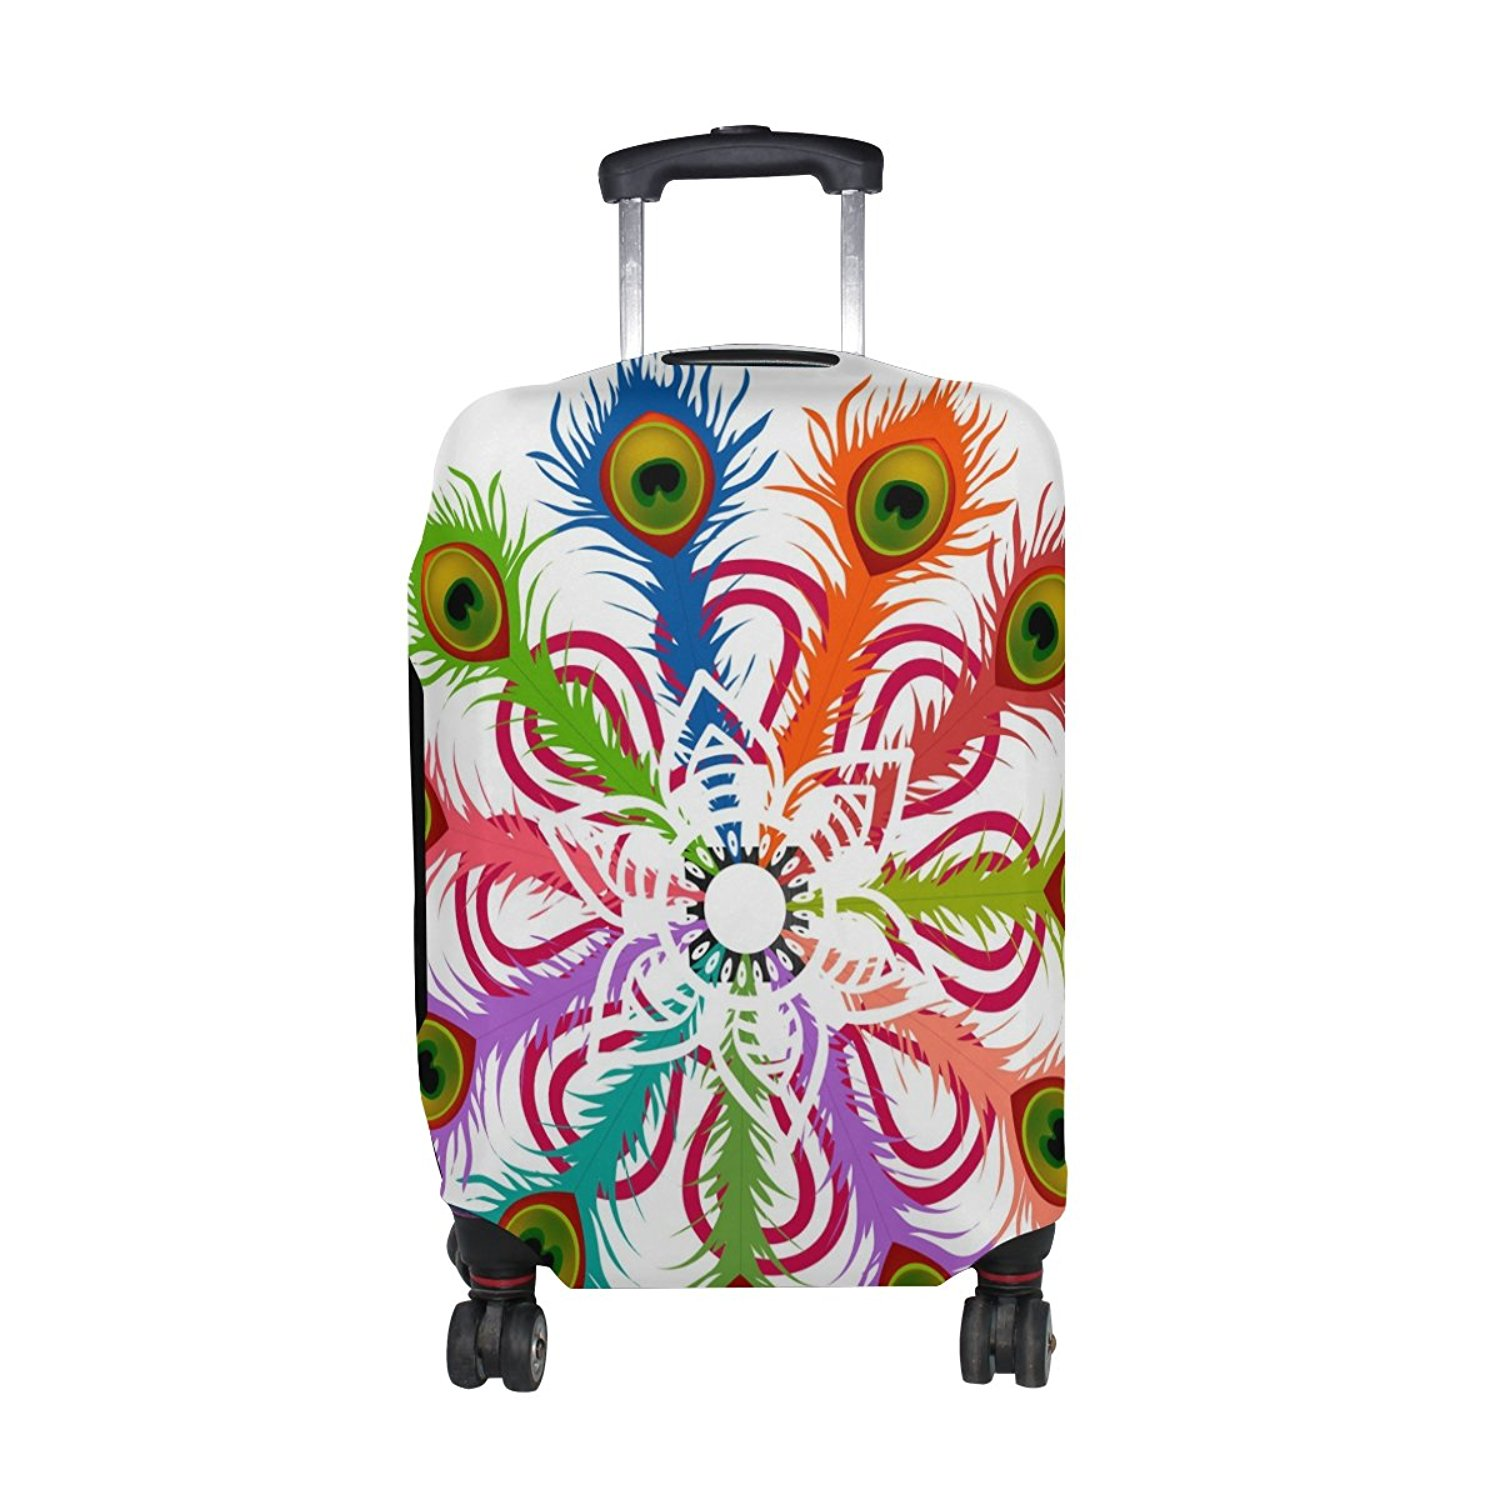 FOLPPLY Colorful Flamingo Pattern Luggage Cover Baggage Suitcase Travel Protector Fit for 18-32 Inch